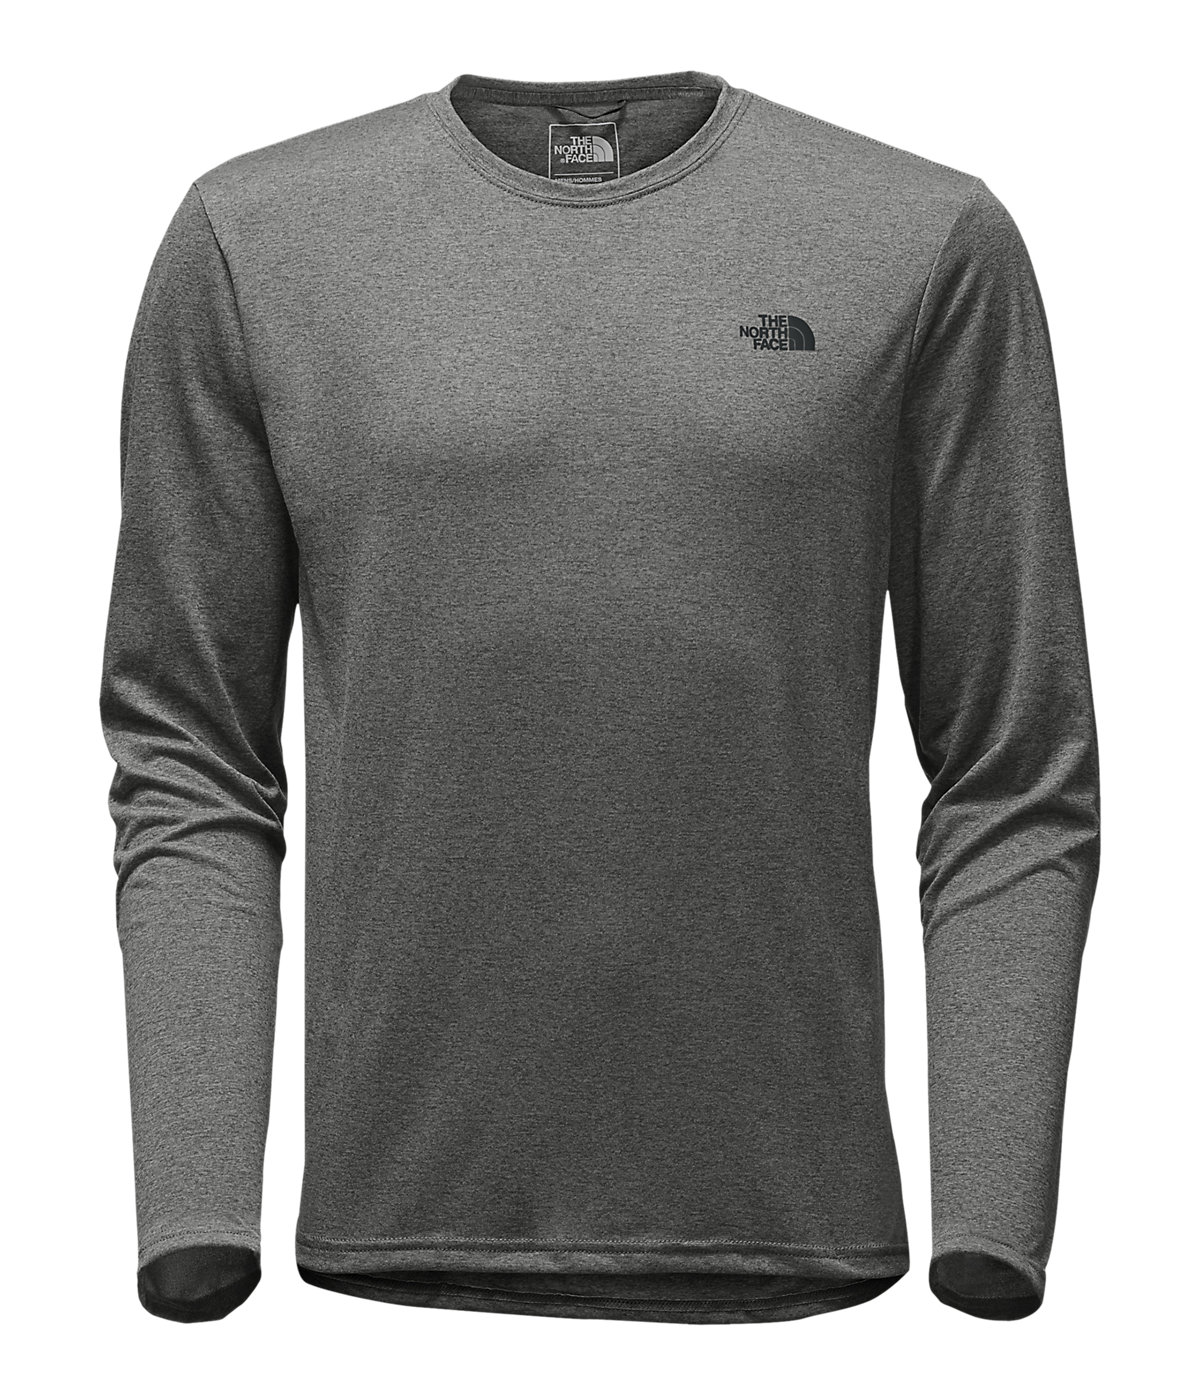 67581ed65 The North Face Men's Reaxion Amp Long Sleeve Shirt